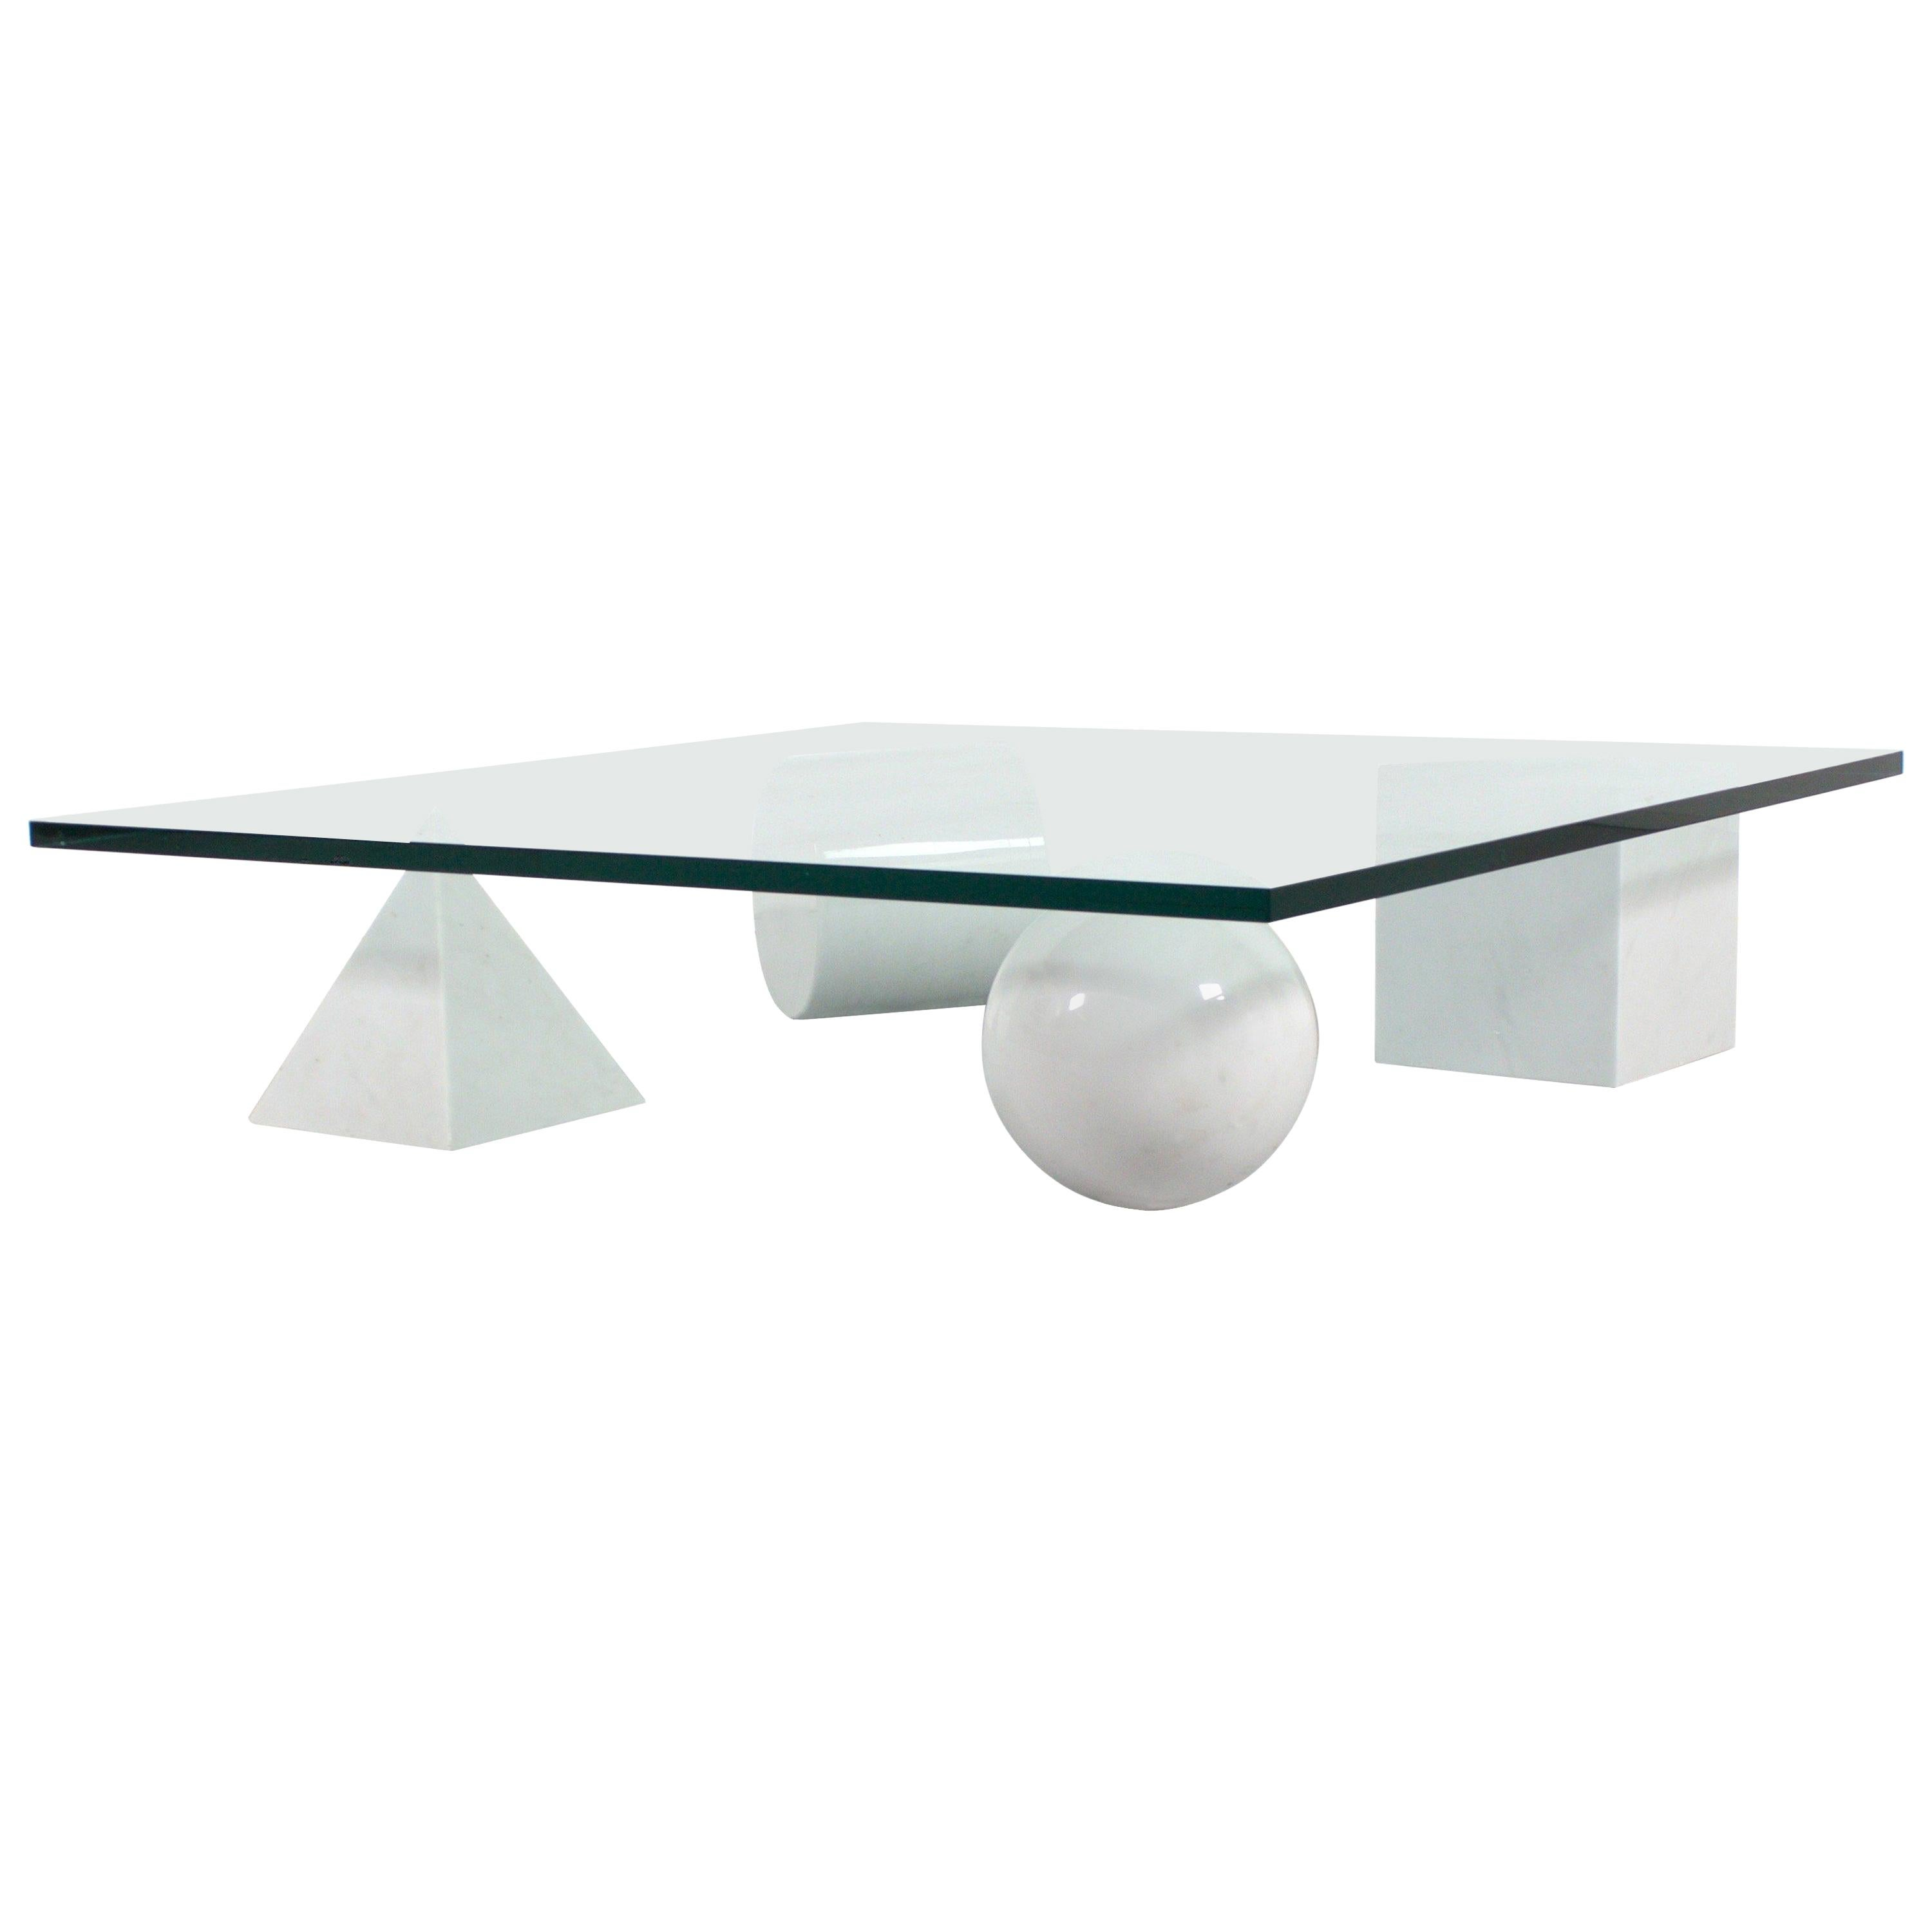 Massimo and Lella Vignelli 'Metaphora' Coffee Table in Carrara Marble and Glass